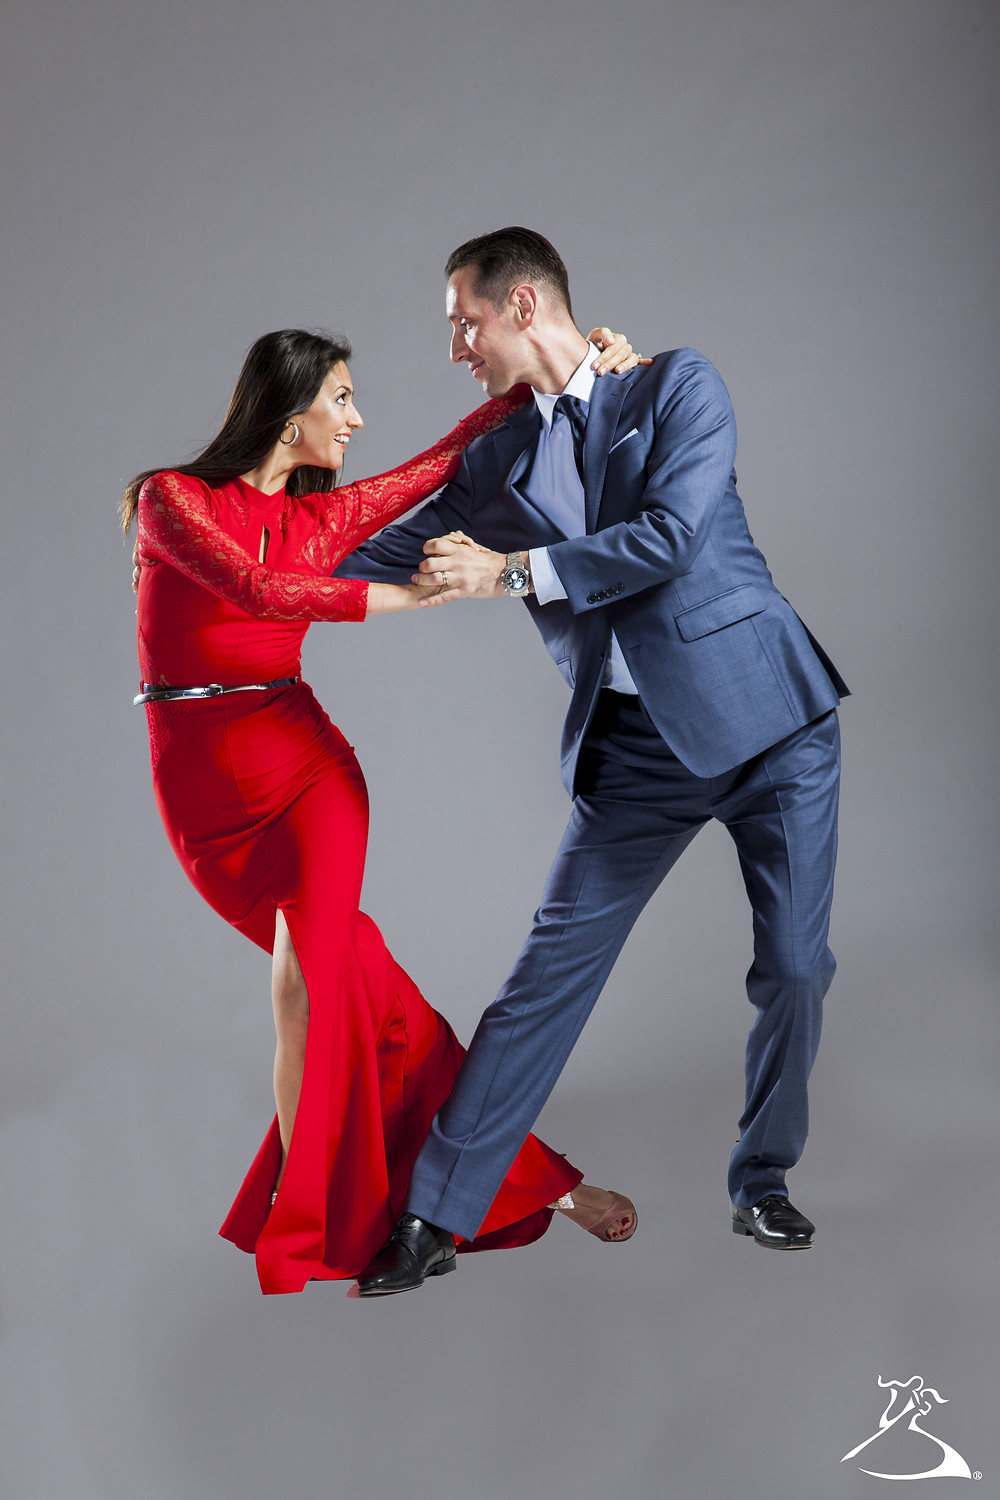 The Tango adds drama and flare to your dancing.